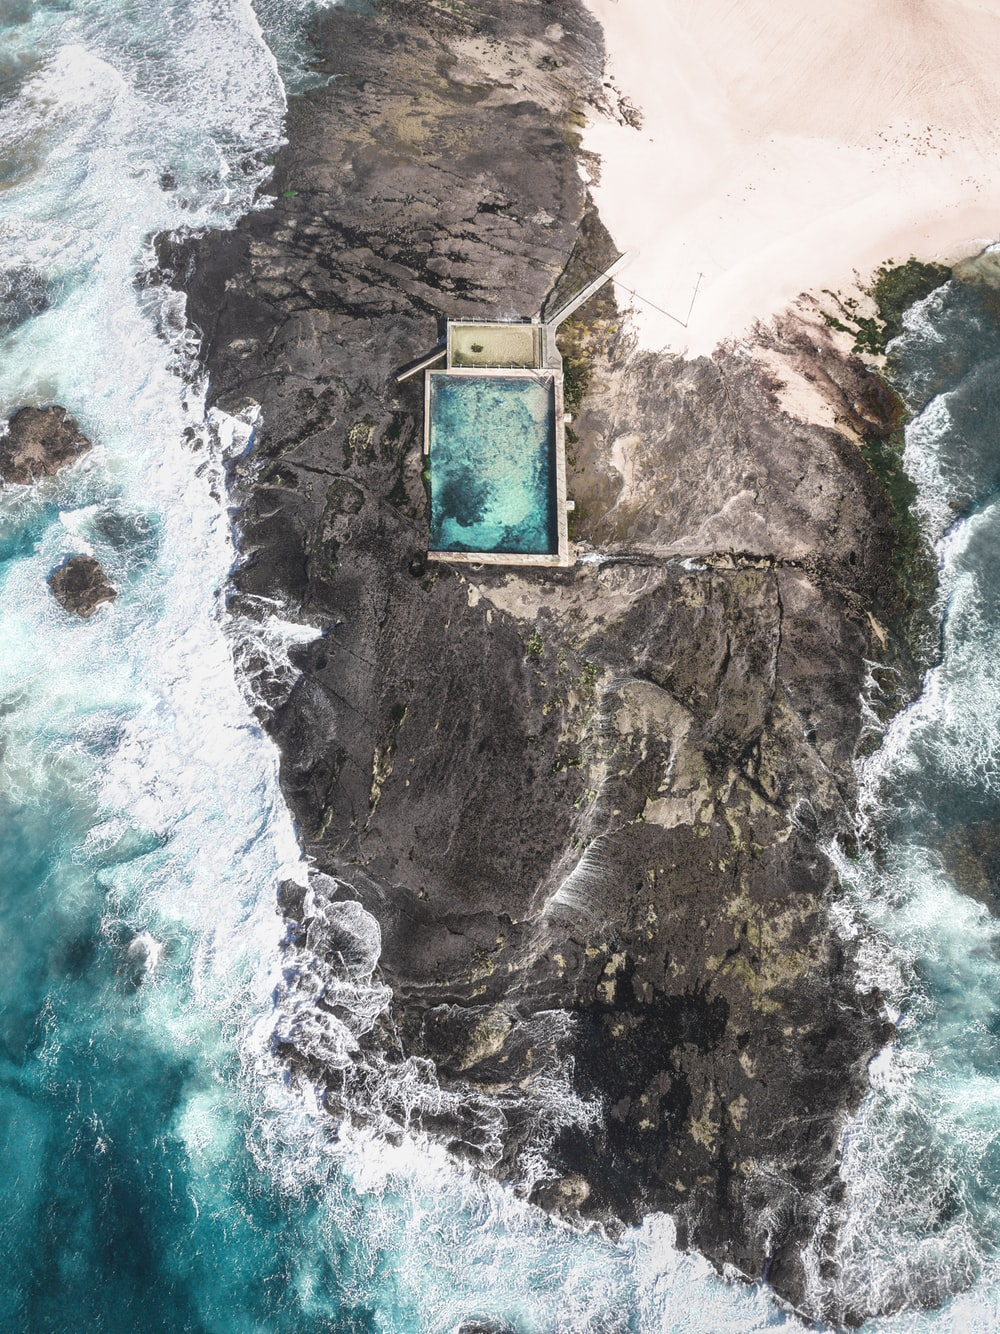 aerial photo of building on rock formation